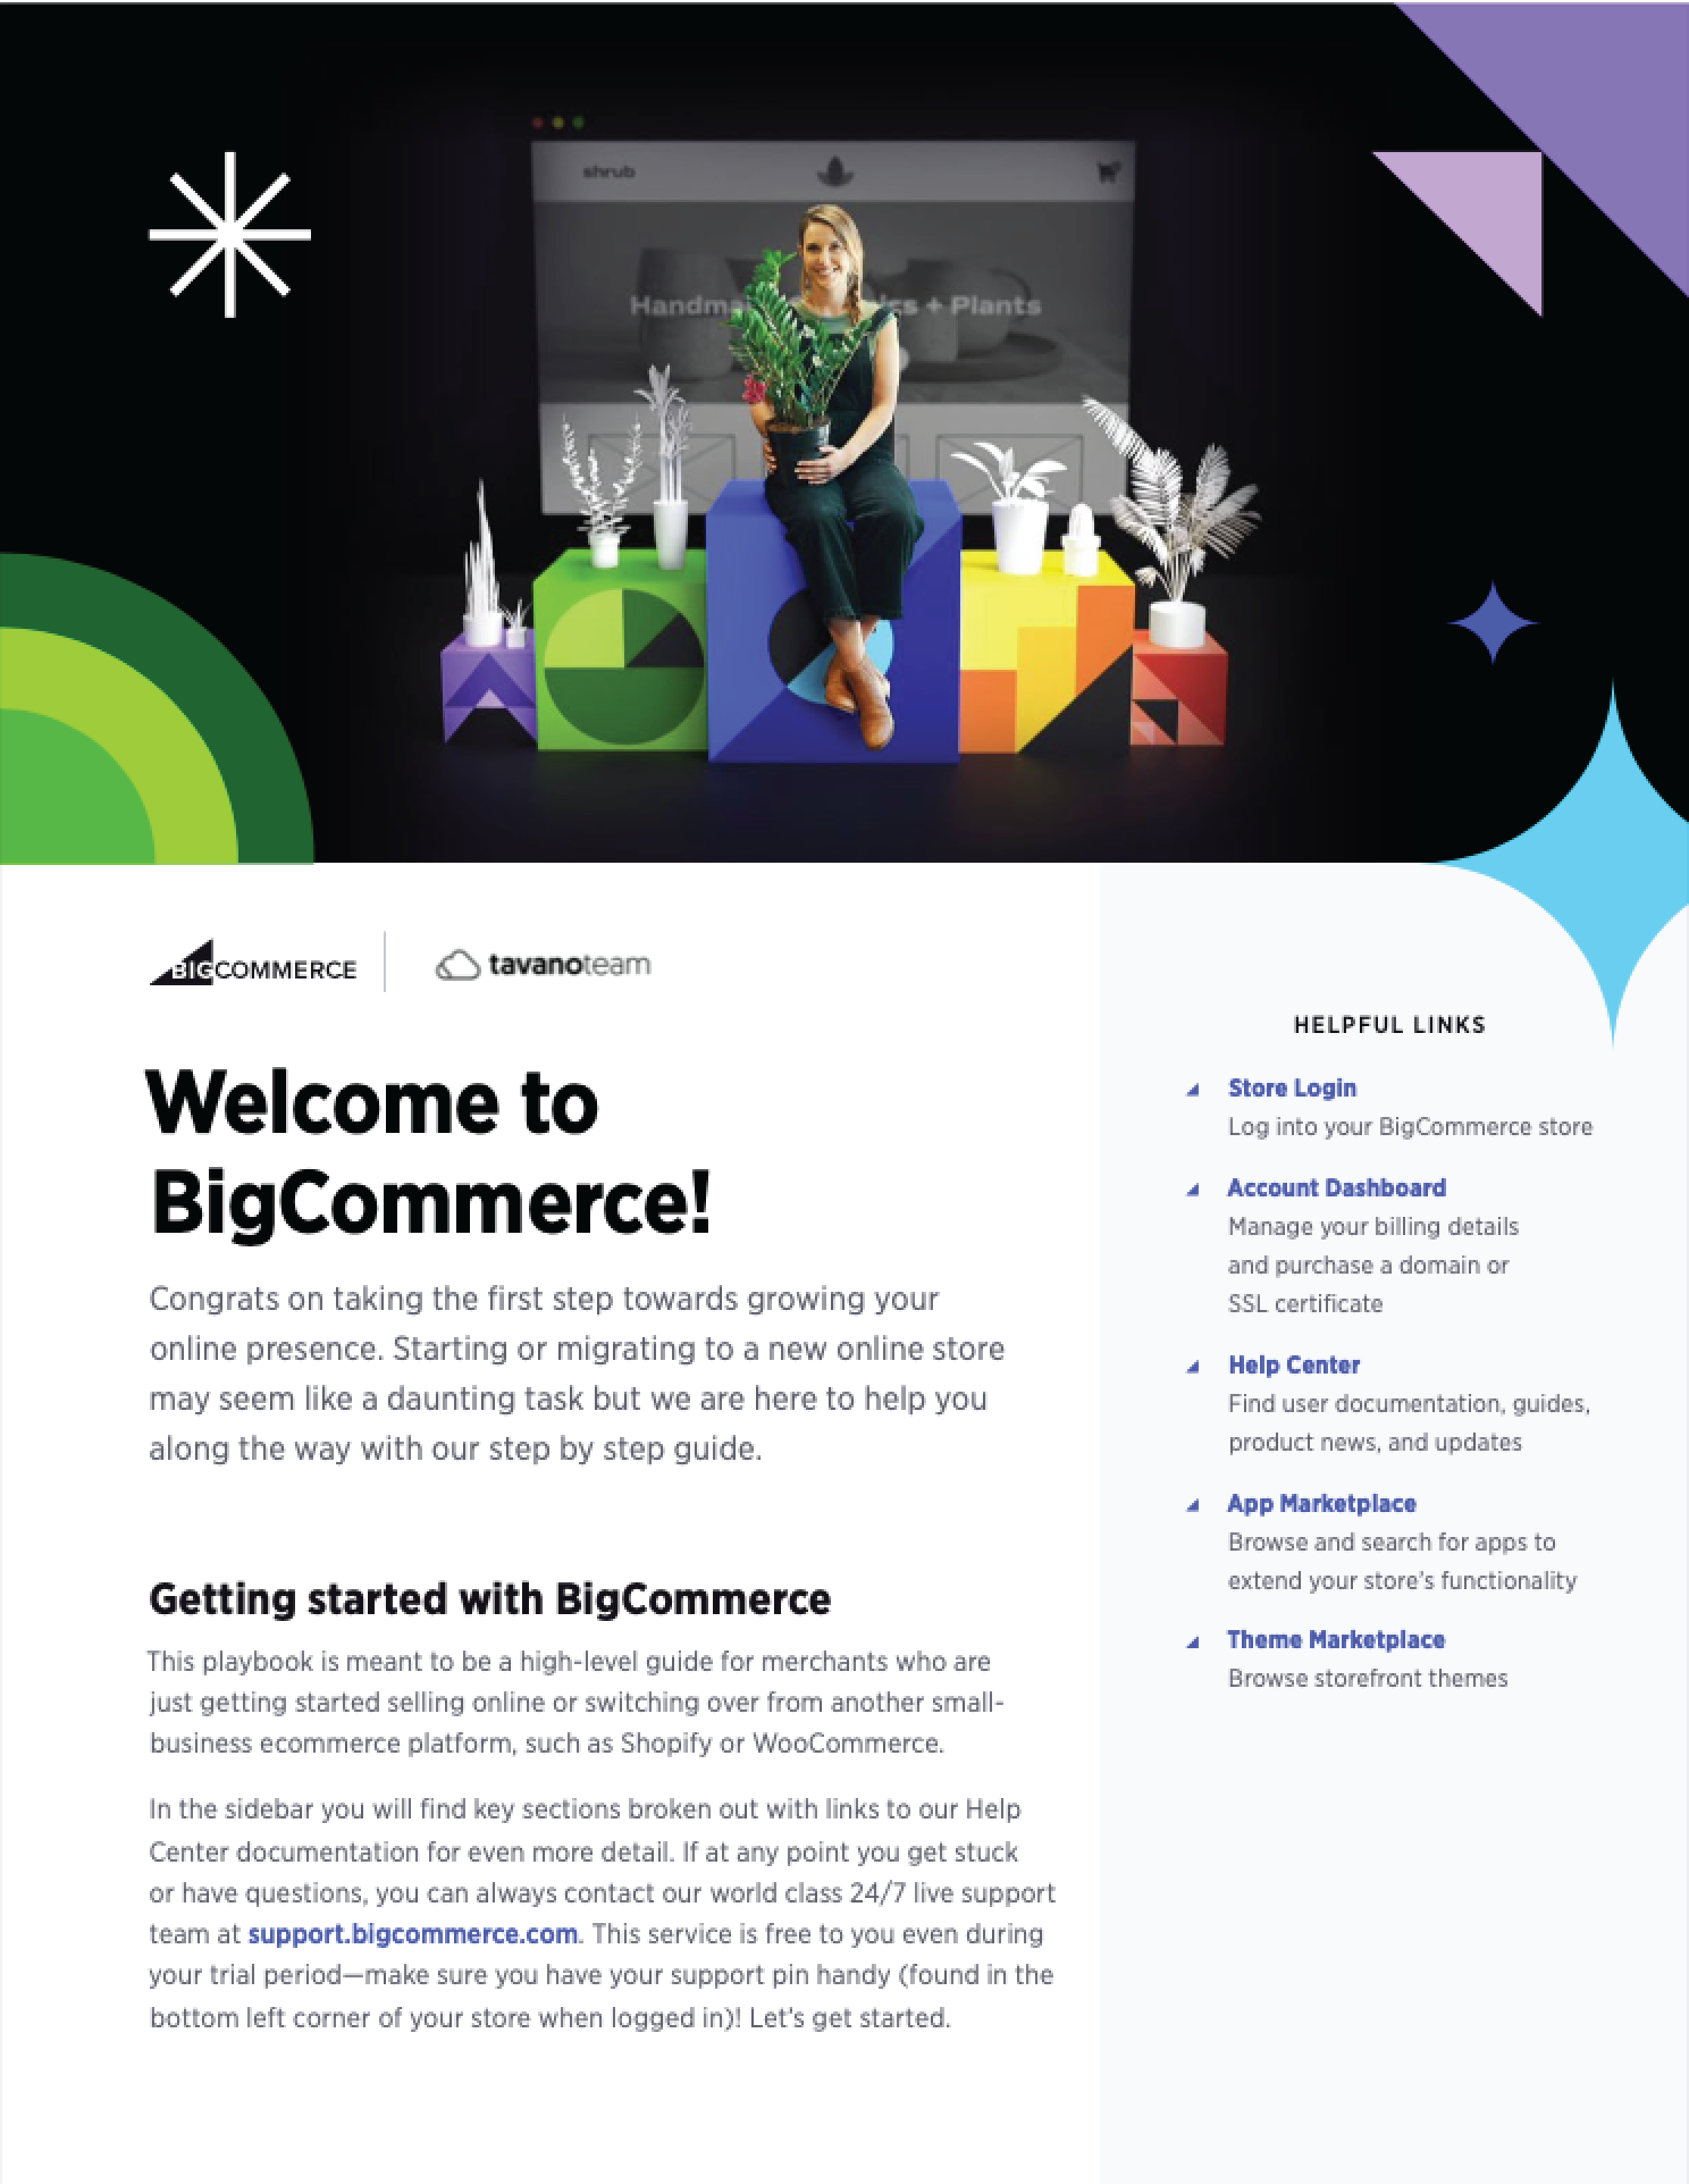 welcome-guide-to-bigcommerce-tavano-team